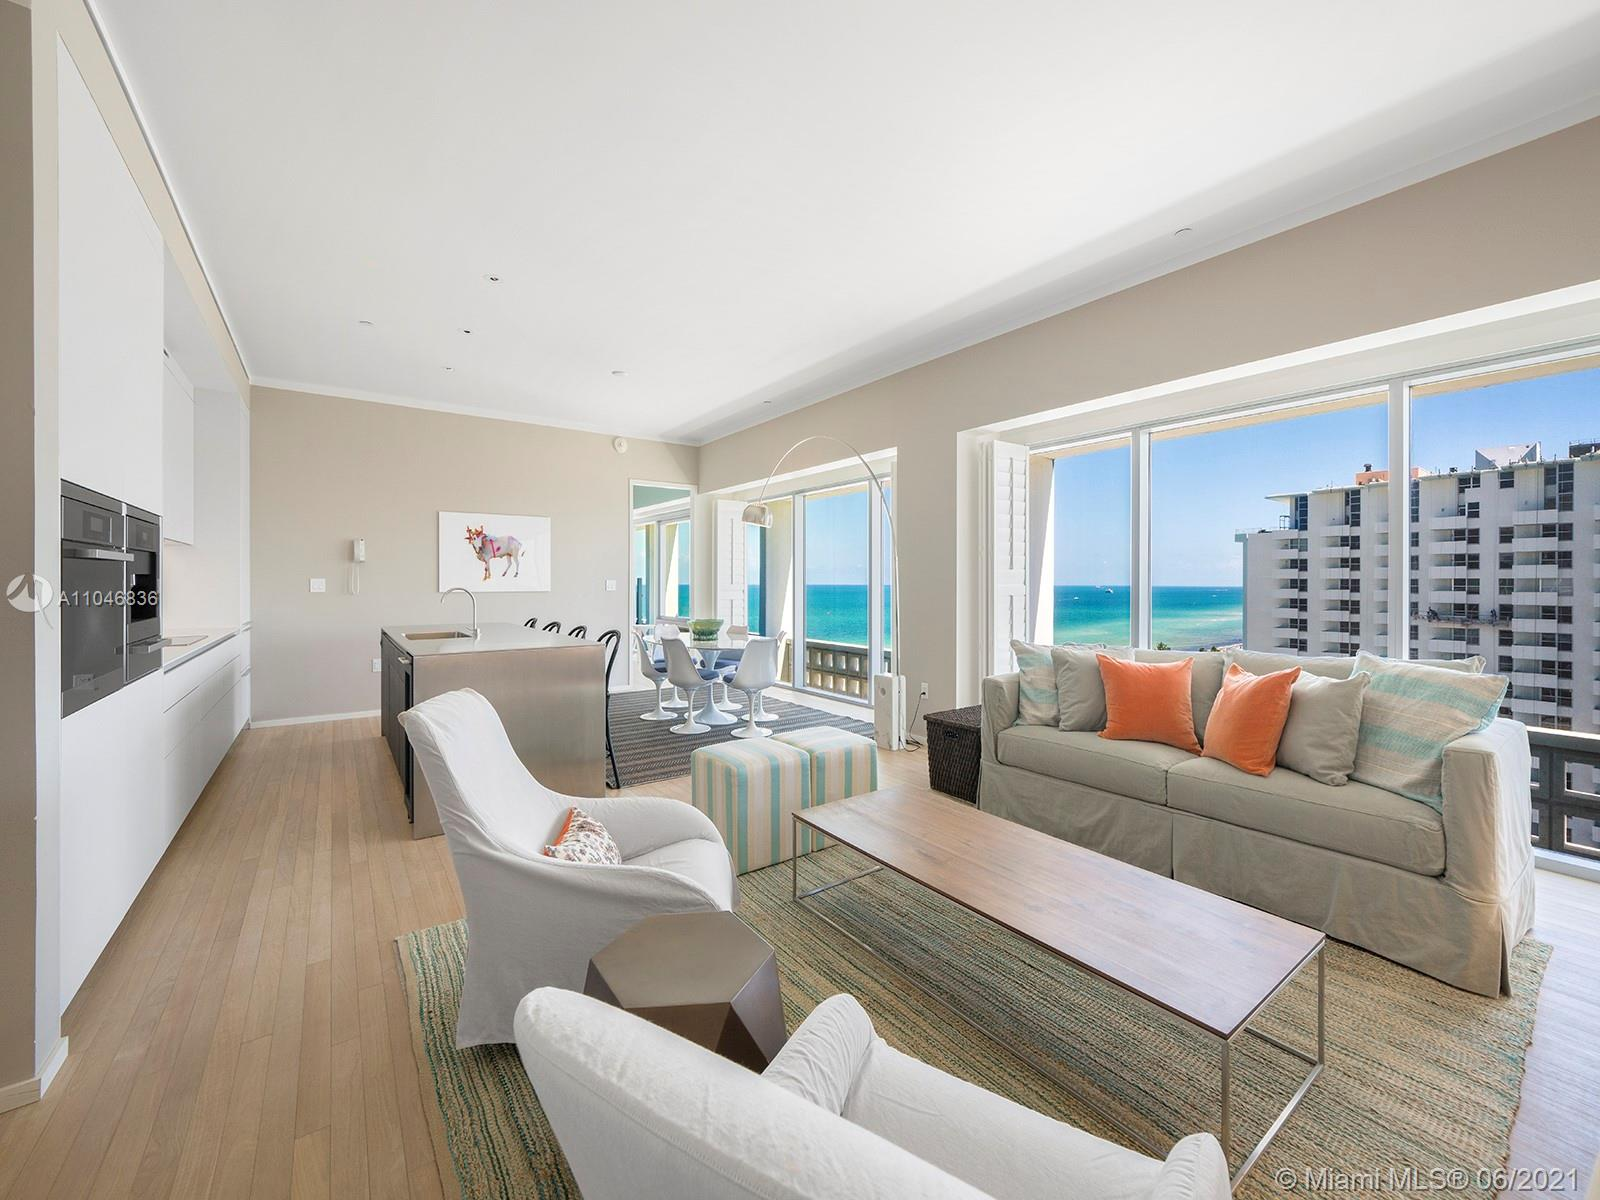 Live in splendor at one of Miami Beach's most iconic addresses, the Edition, the pioneering location of the brand personally crafted by impresario Ian Schrager. This high-floor residence offers a classic split plan layout, with enough room to entertain in style. The two-bedroom apartment offers sublime city and ocean views from every room, as well as a private balcony. The luxurious Bulthaup chef's kitchen offers Miele and Subzero appliances, including a wine fridge & cappuccino maker. All two and a half baths are well-appointed, with special attention given to the onyx master bath with a dedicated wet room. The Edition's roster of amenities is truly spectacular, including accouterments like an ice skating rink, bowling alley, and lavish spa. It is being sold fully furnished.